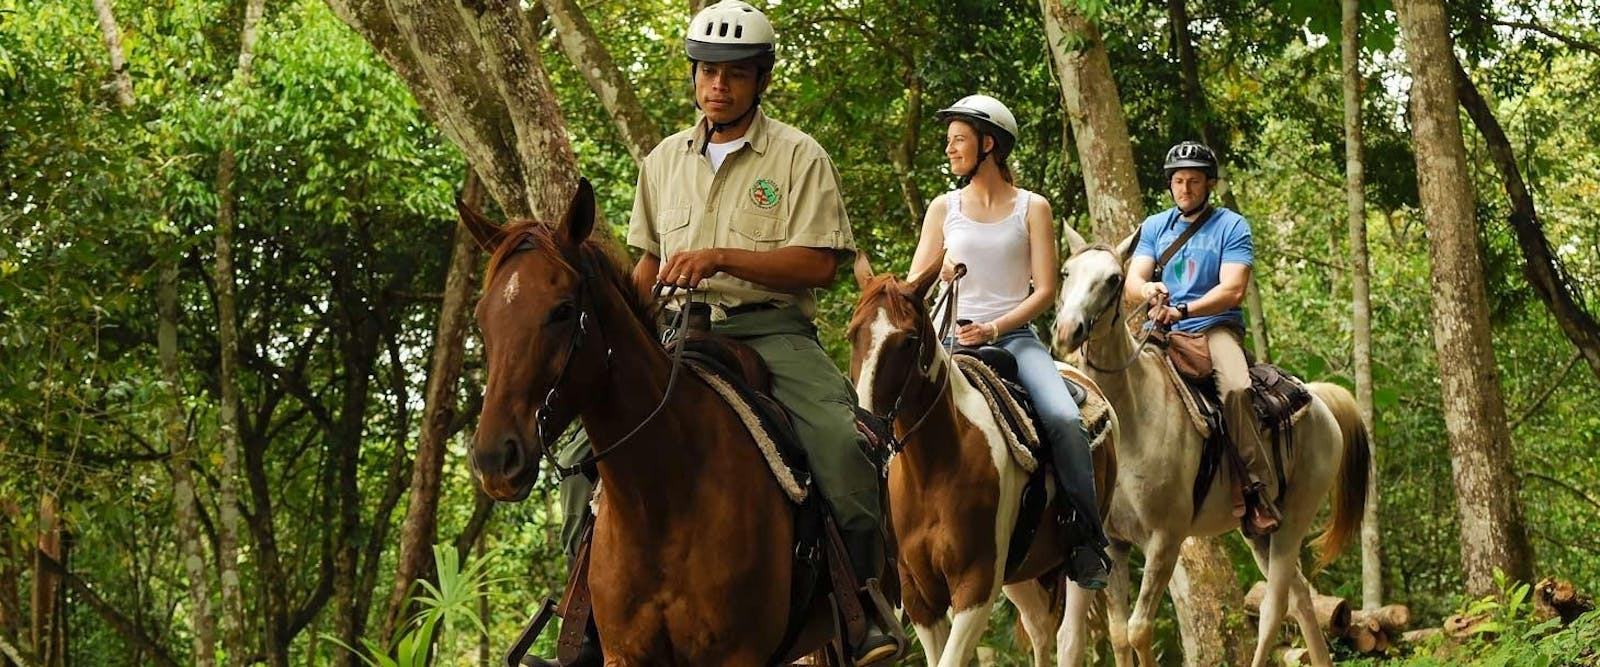 horseback riding tour, Chaa Creek, Belize